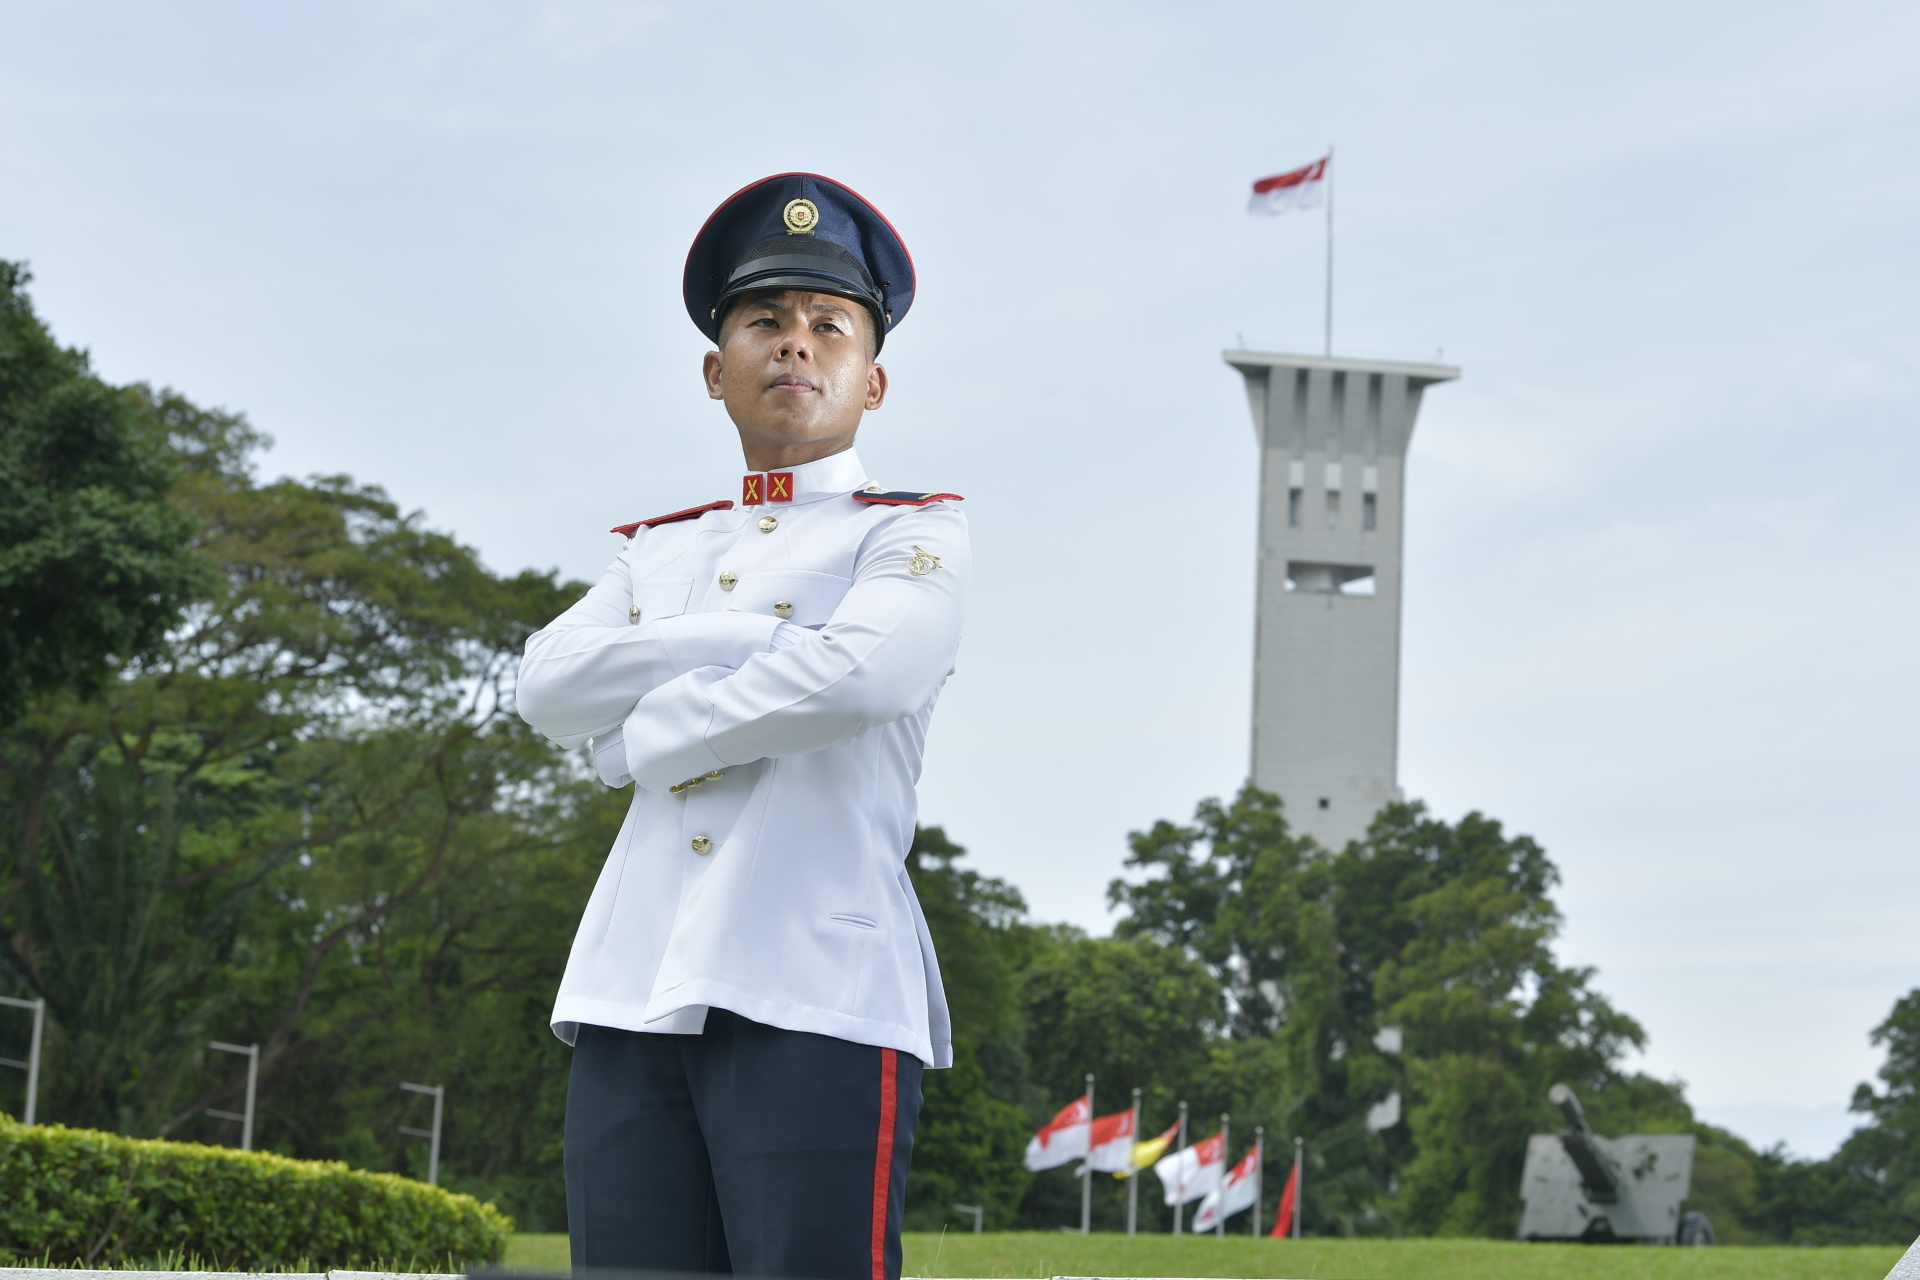 Shaping up to be an SAF officer